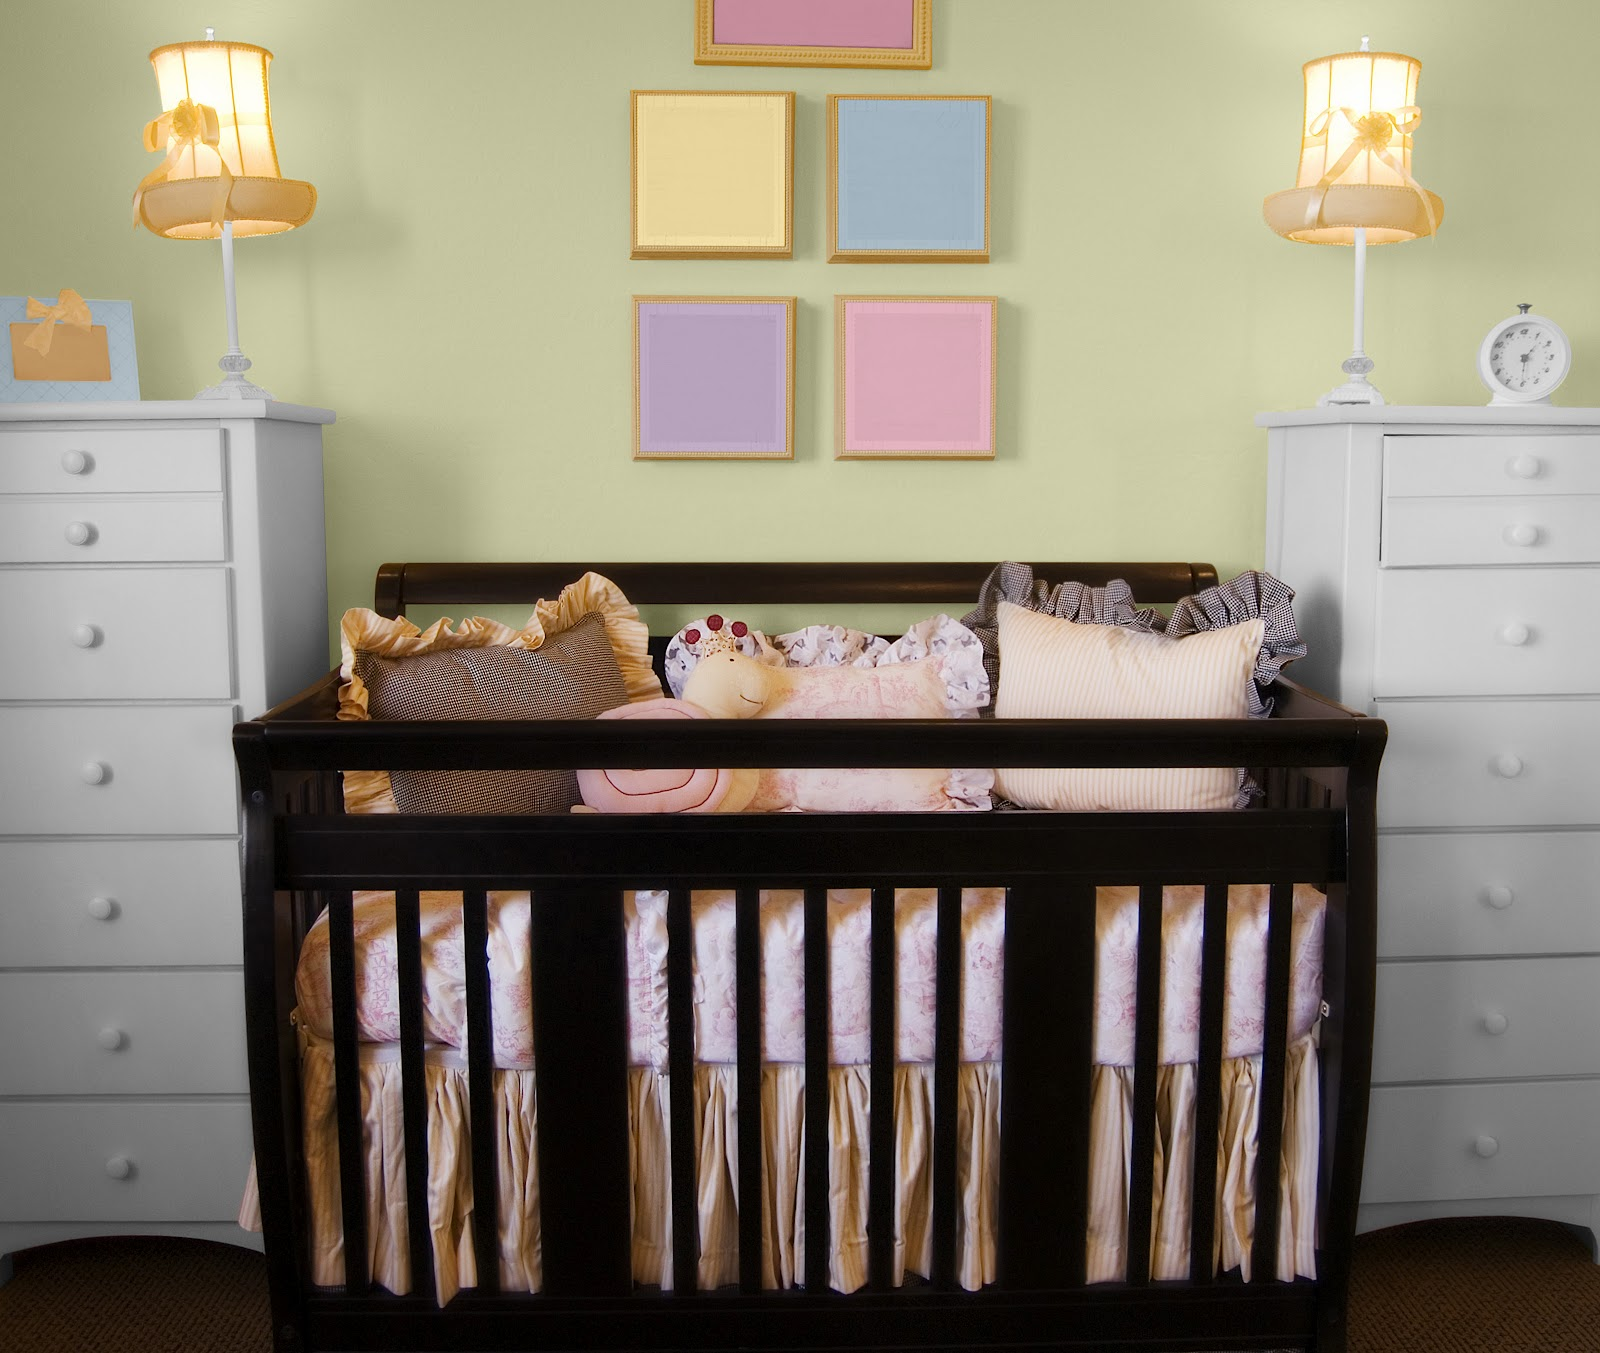 Top 10 baby nursery room colors and decorating ideas - Baby rooms idees ...